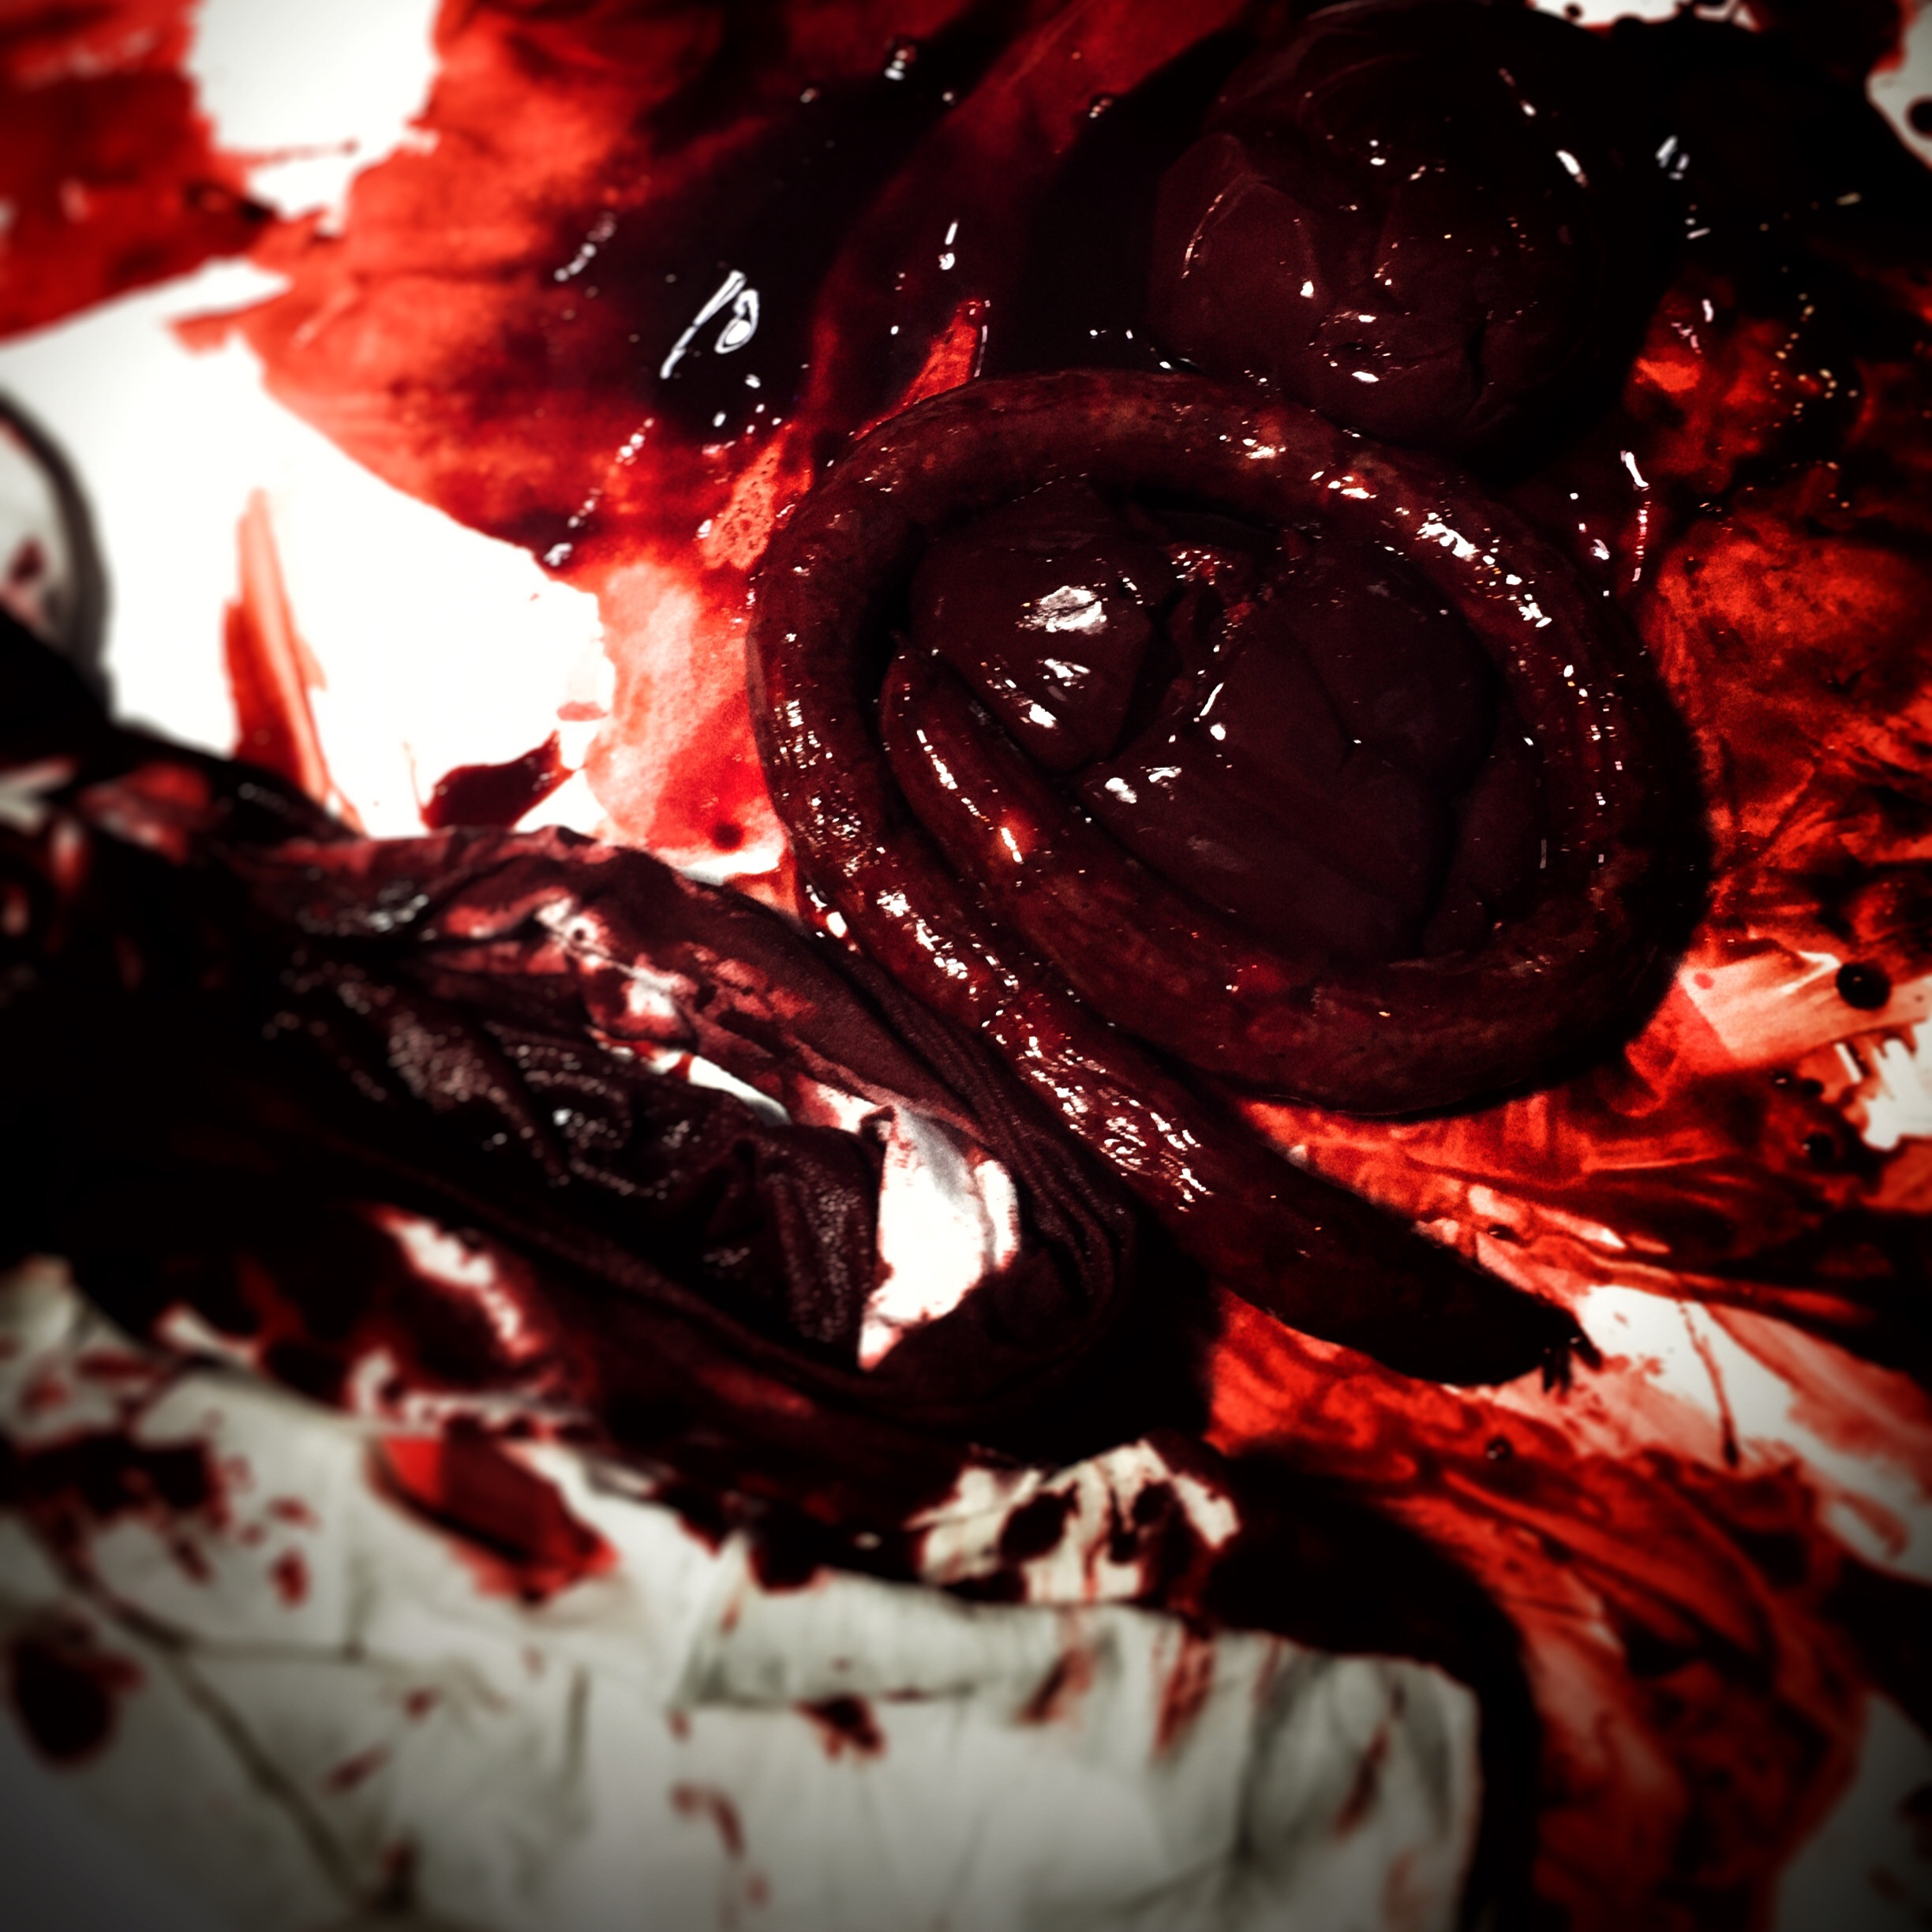 Some of the blood and gore being created and tested.